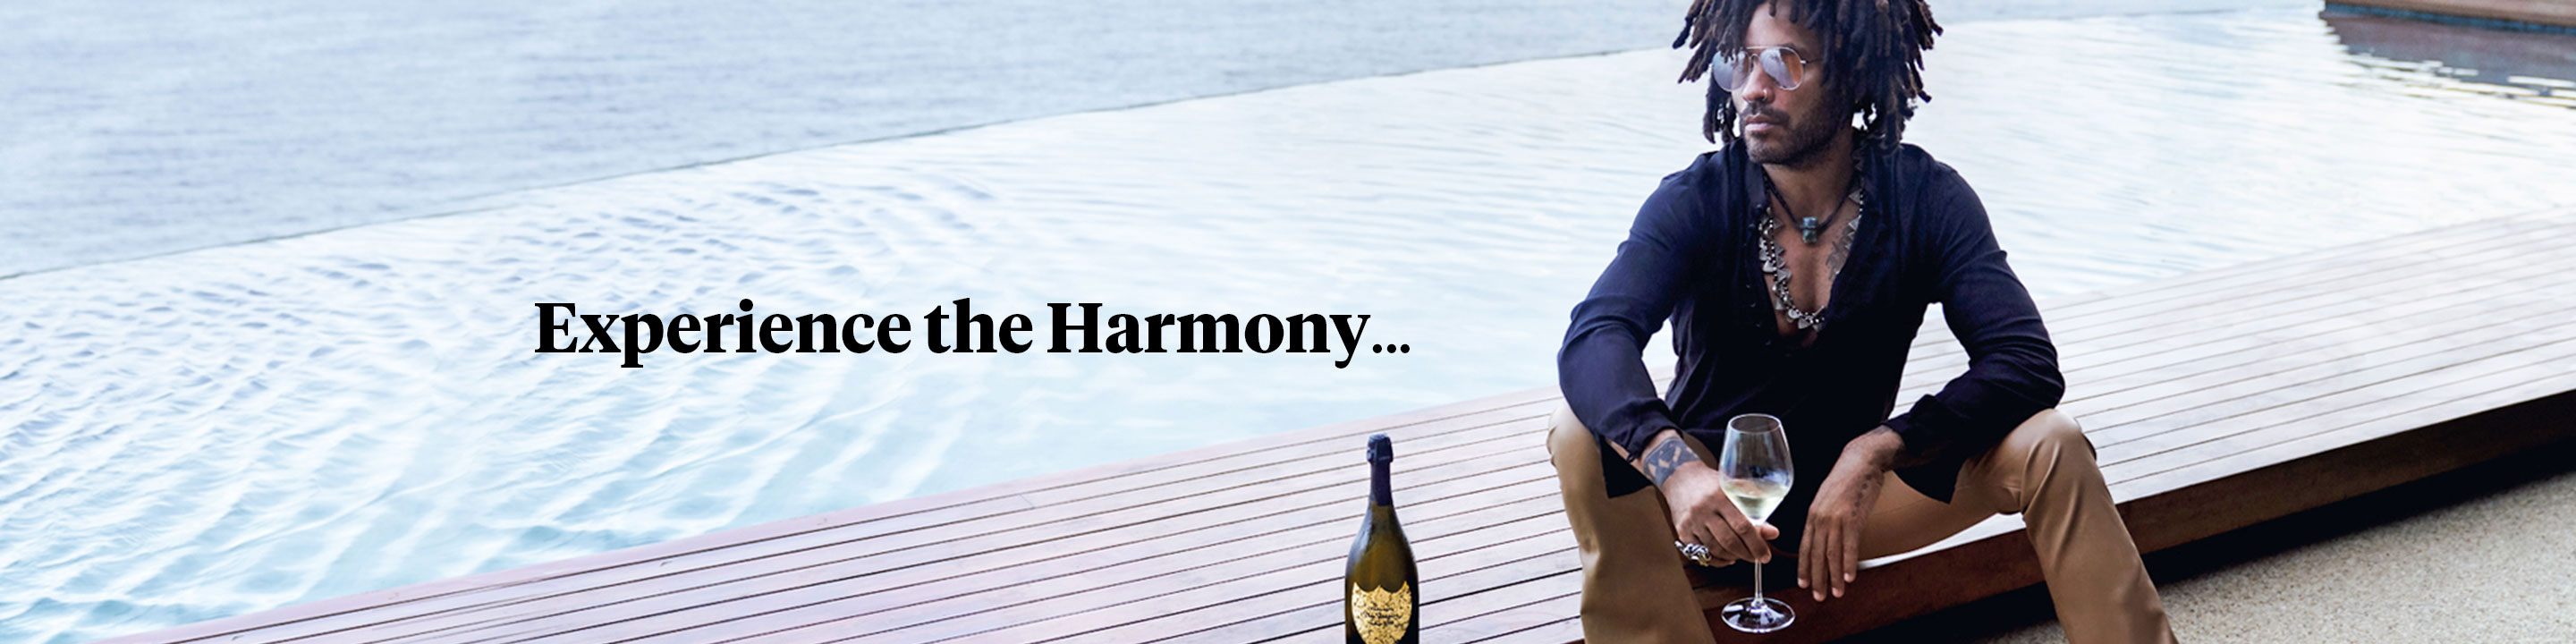 Dom Pérignon has a creative ambition: the quest for harmony as a source of emotion. All creative processes have their limitations. For Dom Pérignon, it's the vintage - an absolute commitment to representing the character of the harvest for a single year, whatever challenges it brings, even going as far as not declaring a vintage.